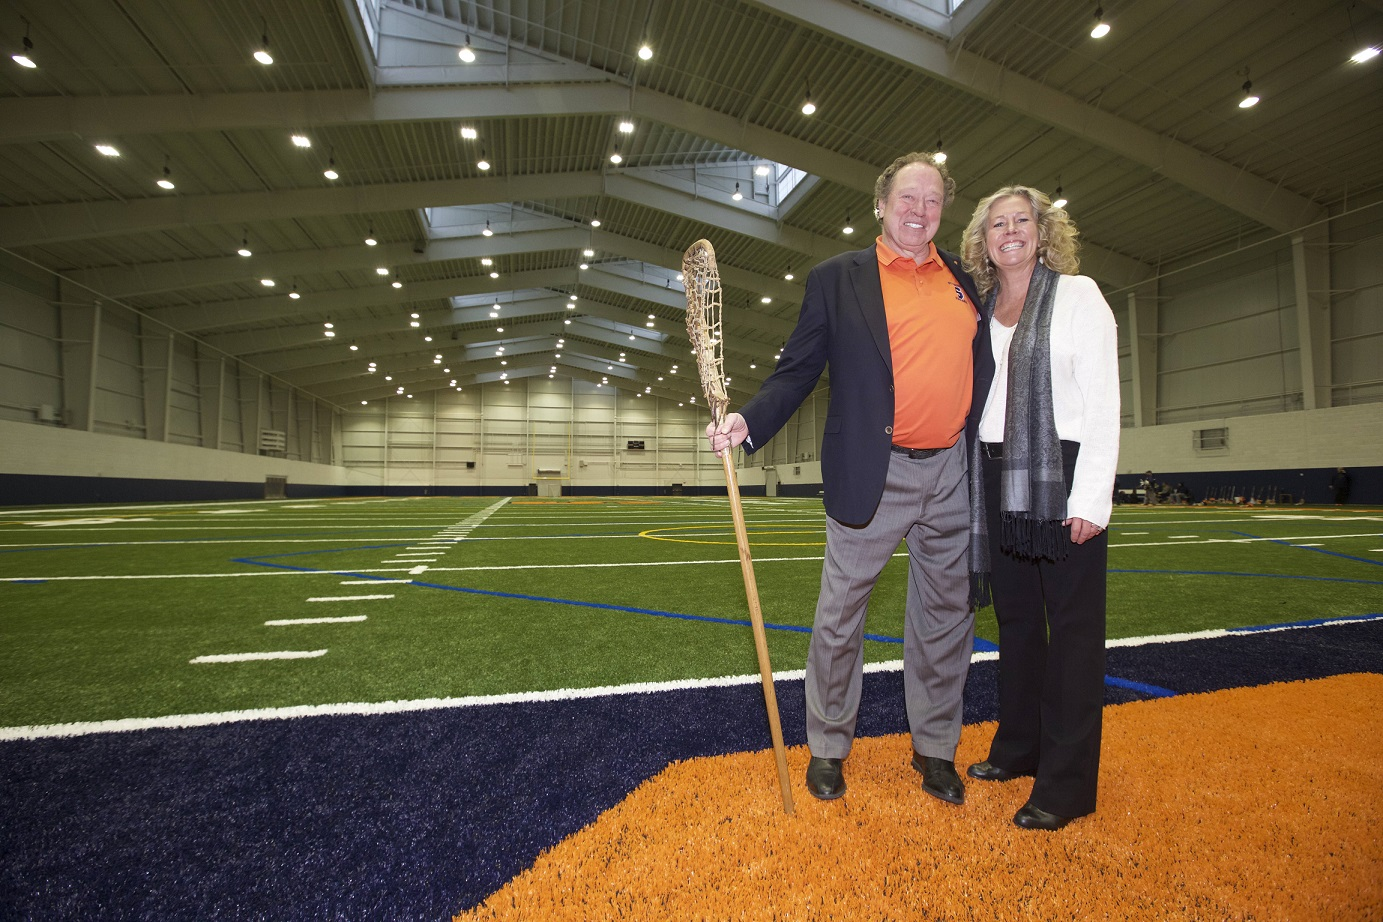 two people standing on athletic field